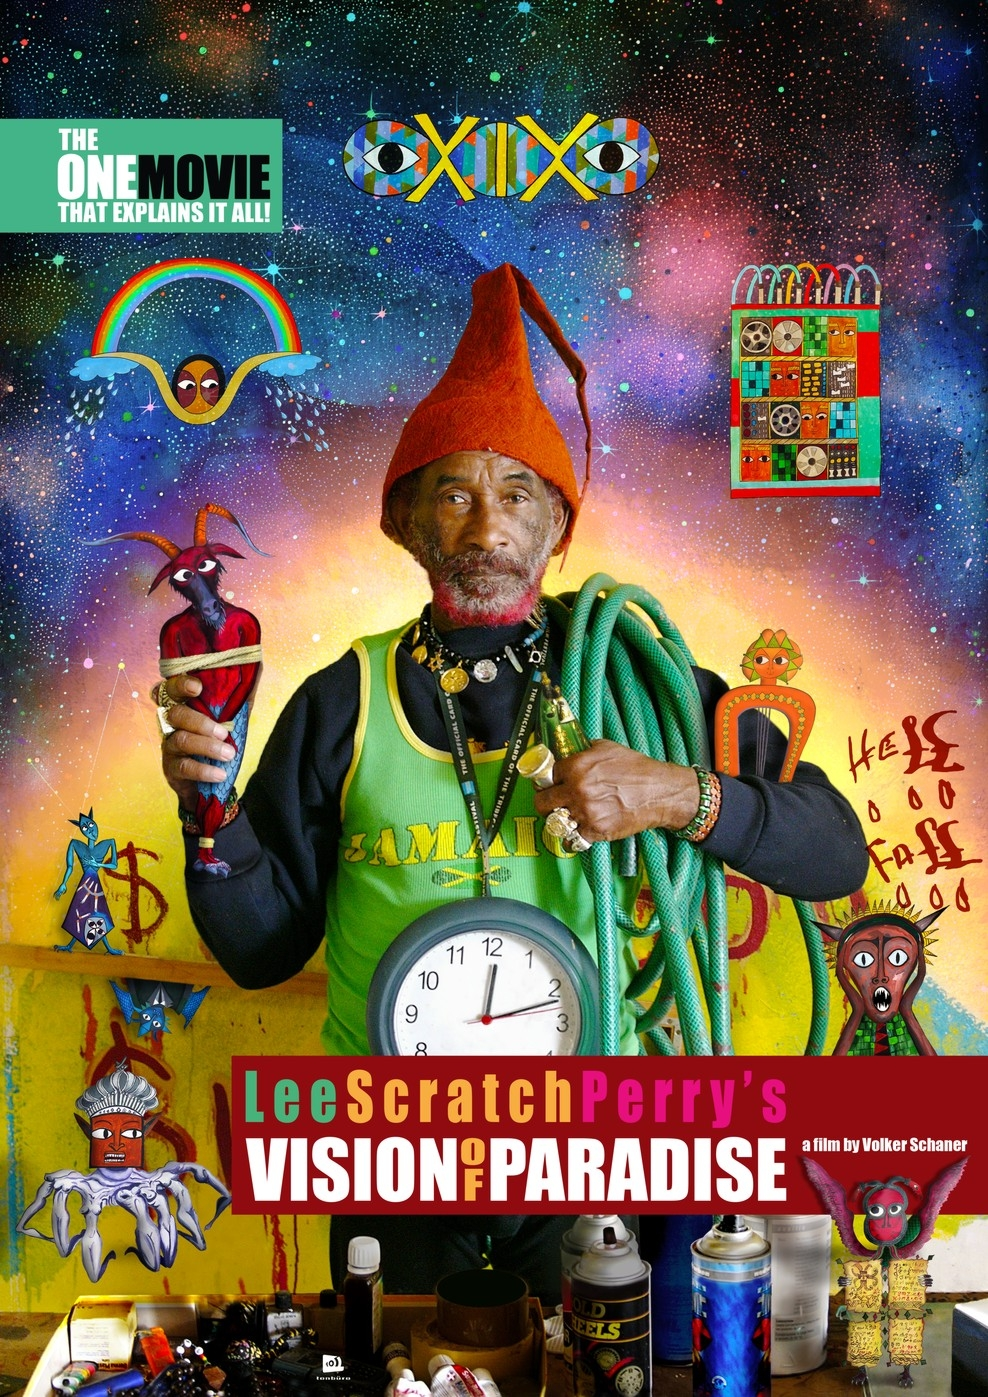 Lee Scratch Perry's Vision of Paradise (Poster)